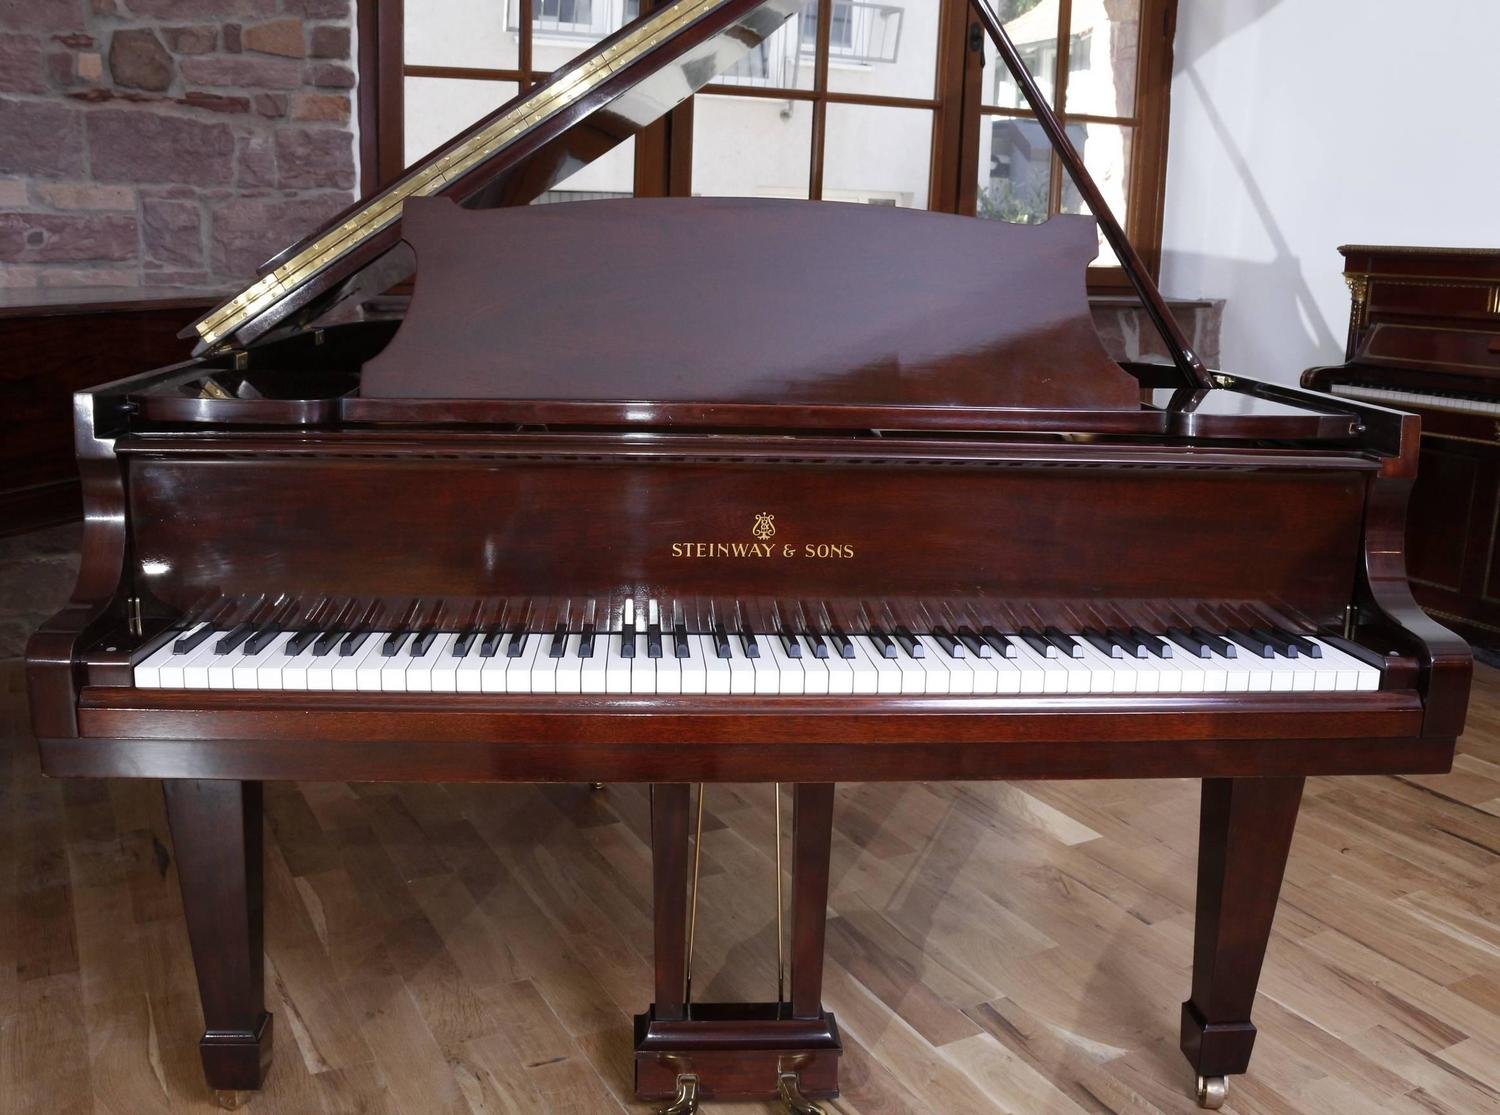 steinway and sons model 39 s 39 baby grand piano mahogany. Black Bedroom Furniture Sets. Home Design Ideas